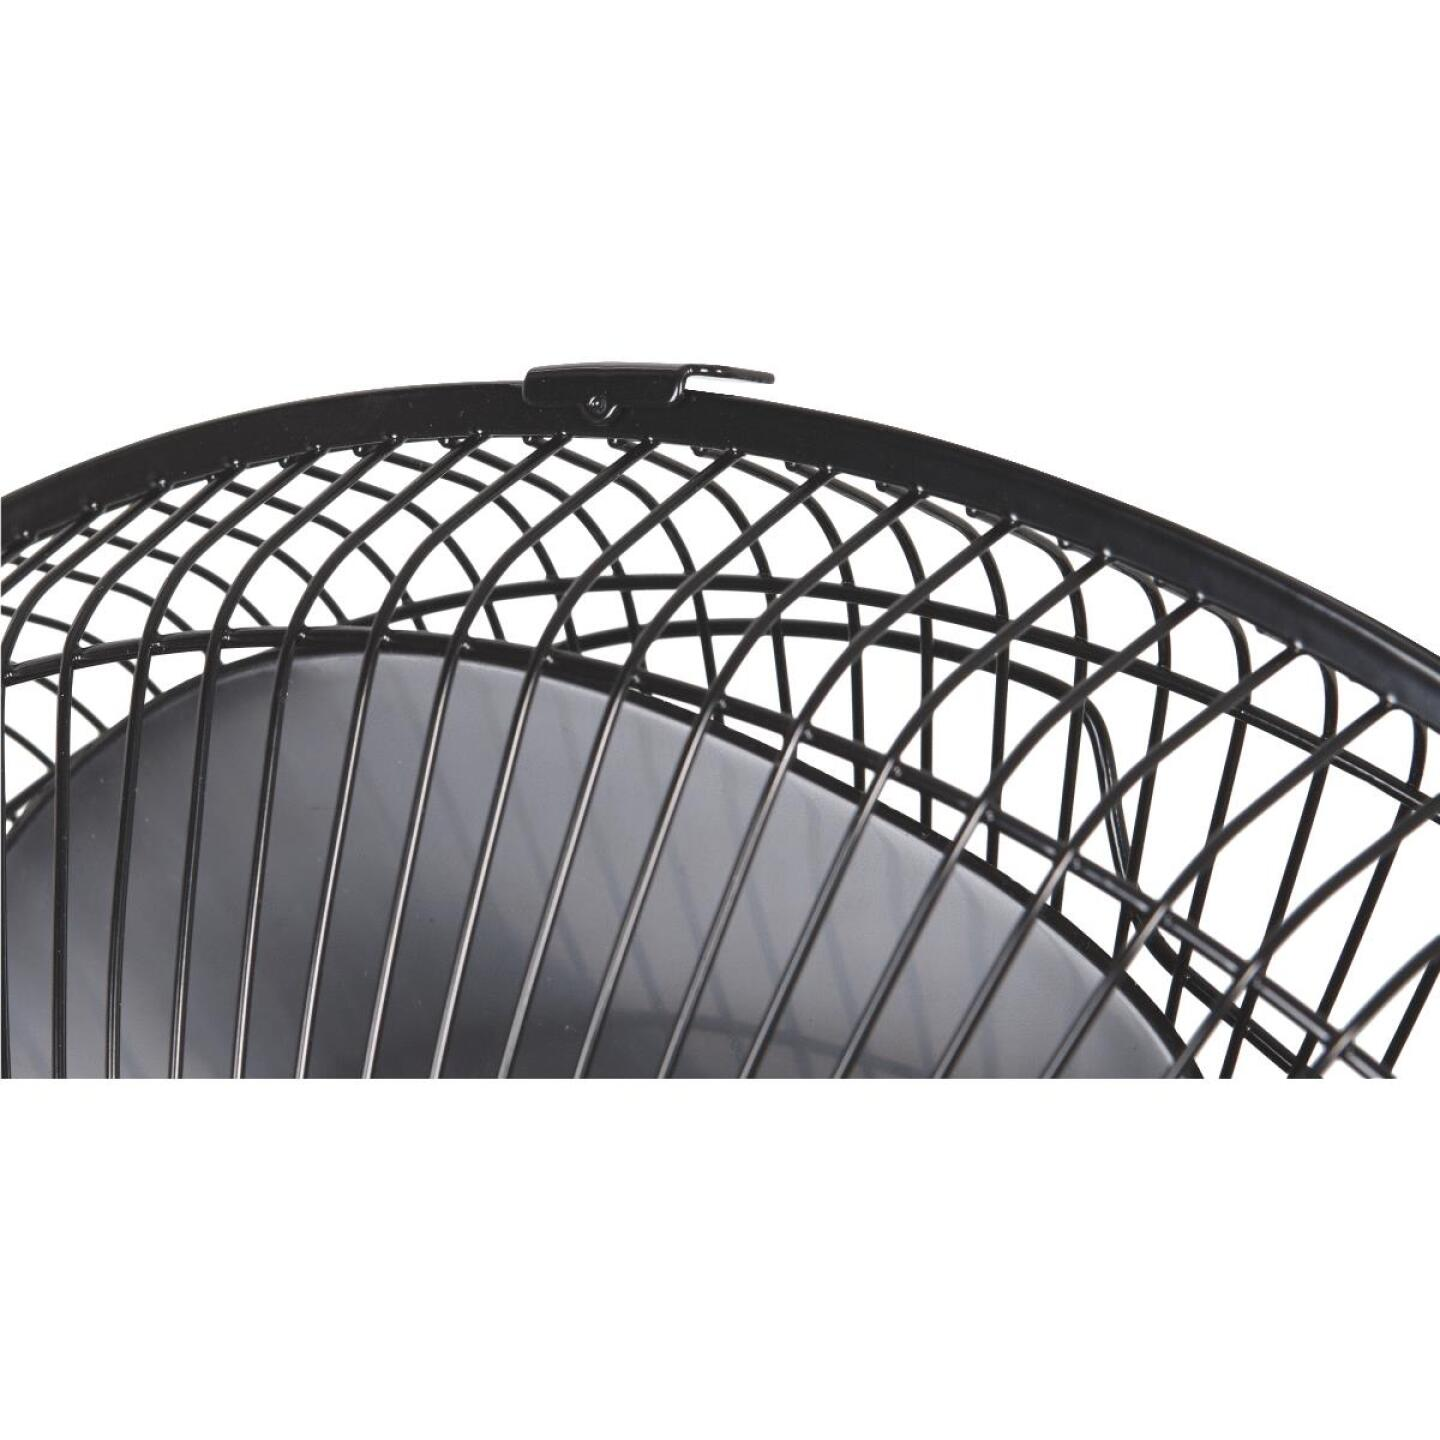 Best Comfort 16 In. 3-Speed Extends to 49 In. H. Black Oscillating Pedestal Fan Image 5